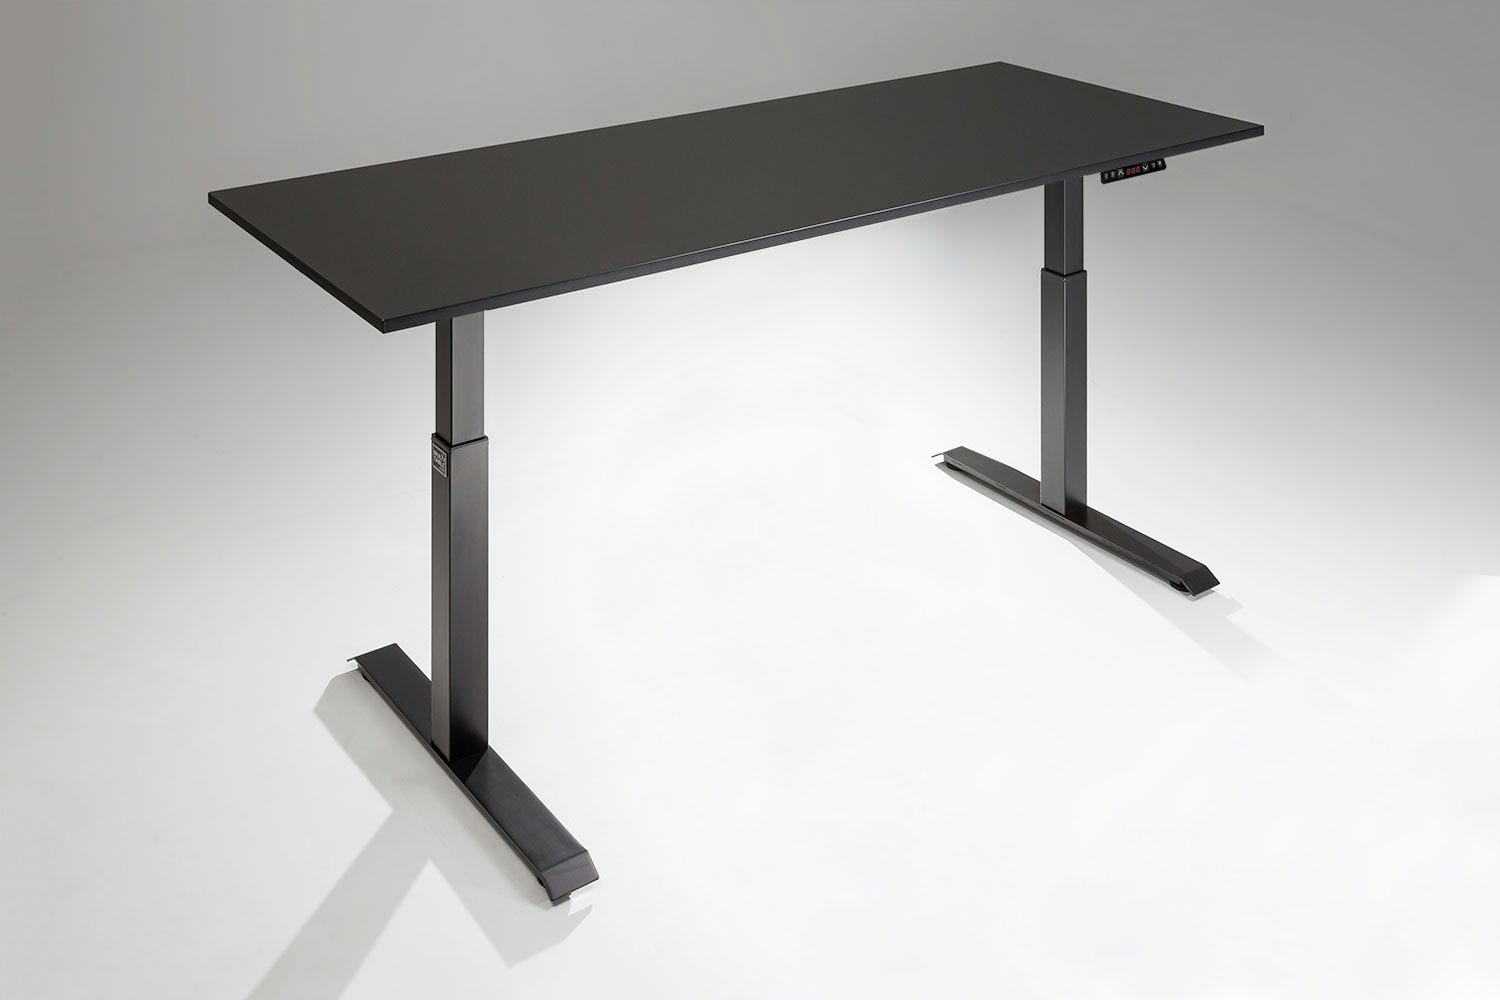 Mod E 2 Height Adjustable Standing Desk Black Base Black Table Top